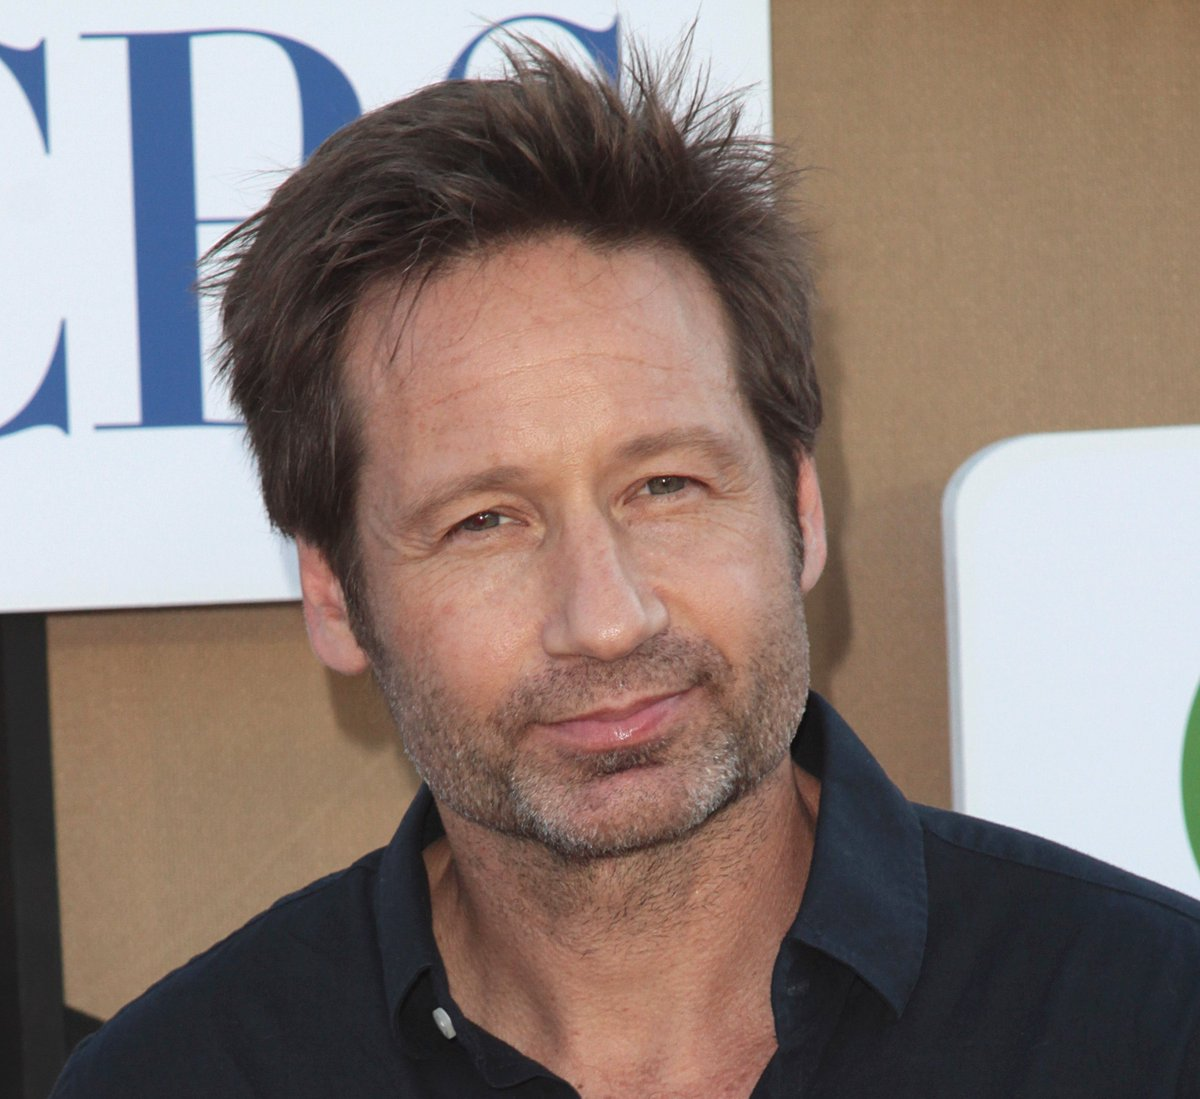 David Duchovny | News, Photos and Videos | Contactmusic.com